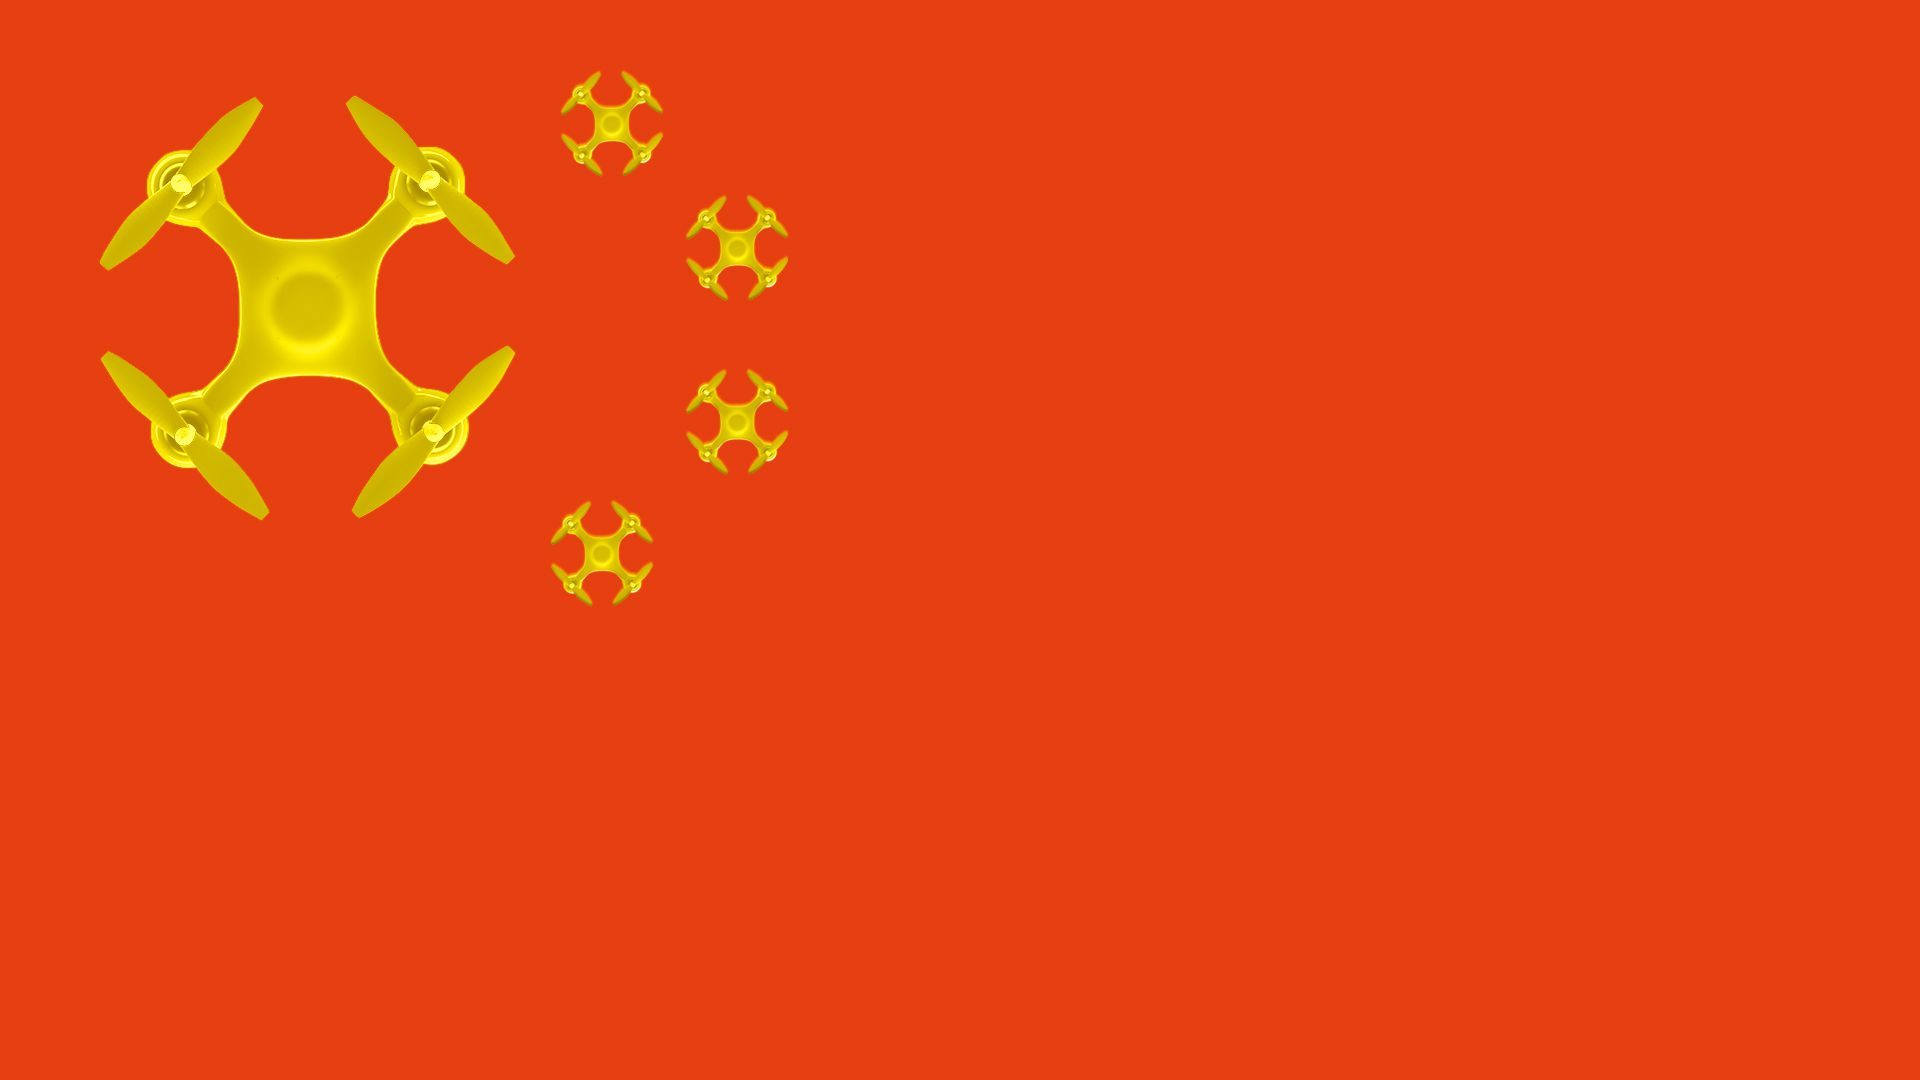 Illustration of a Chinese flag with drones in place of stars